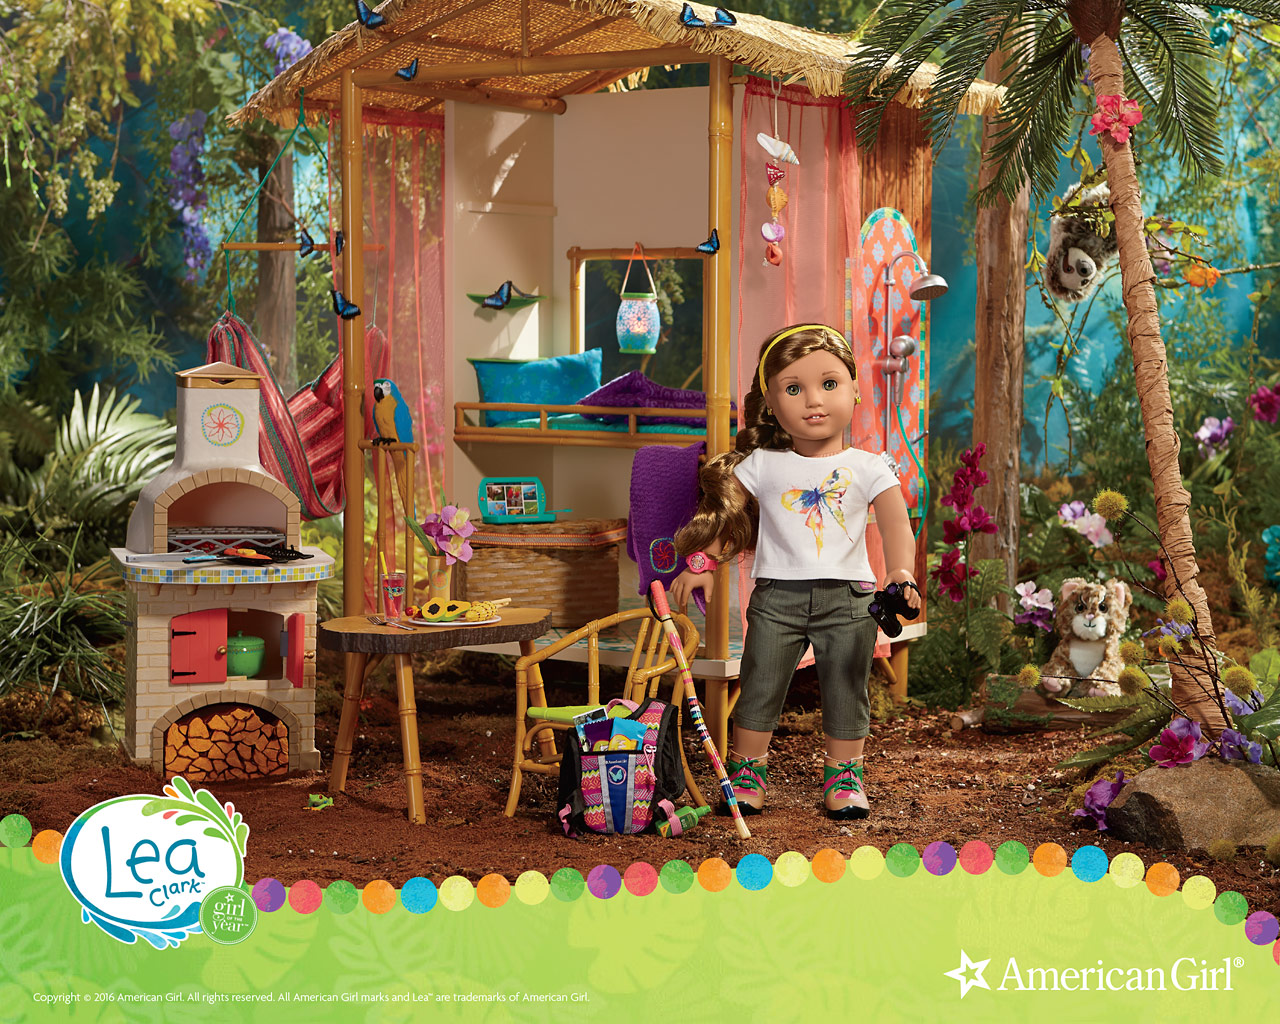 American Girl Doll Wallpaper Lea Clark 2016 Girl Of The Year Play At American Girl